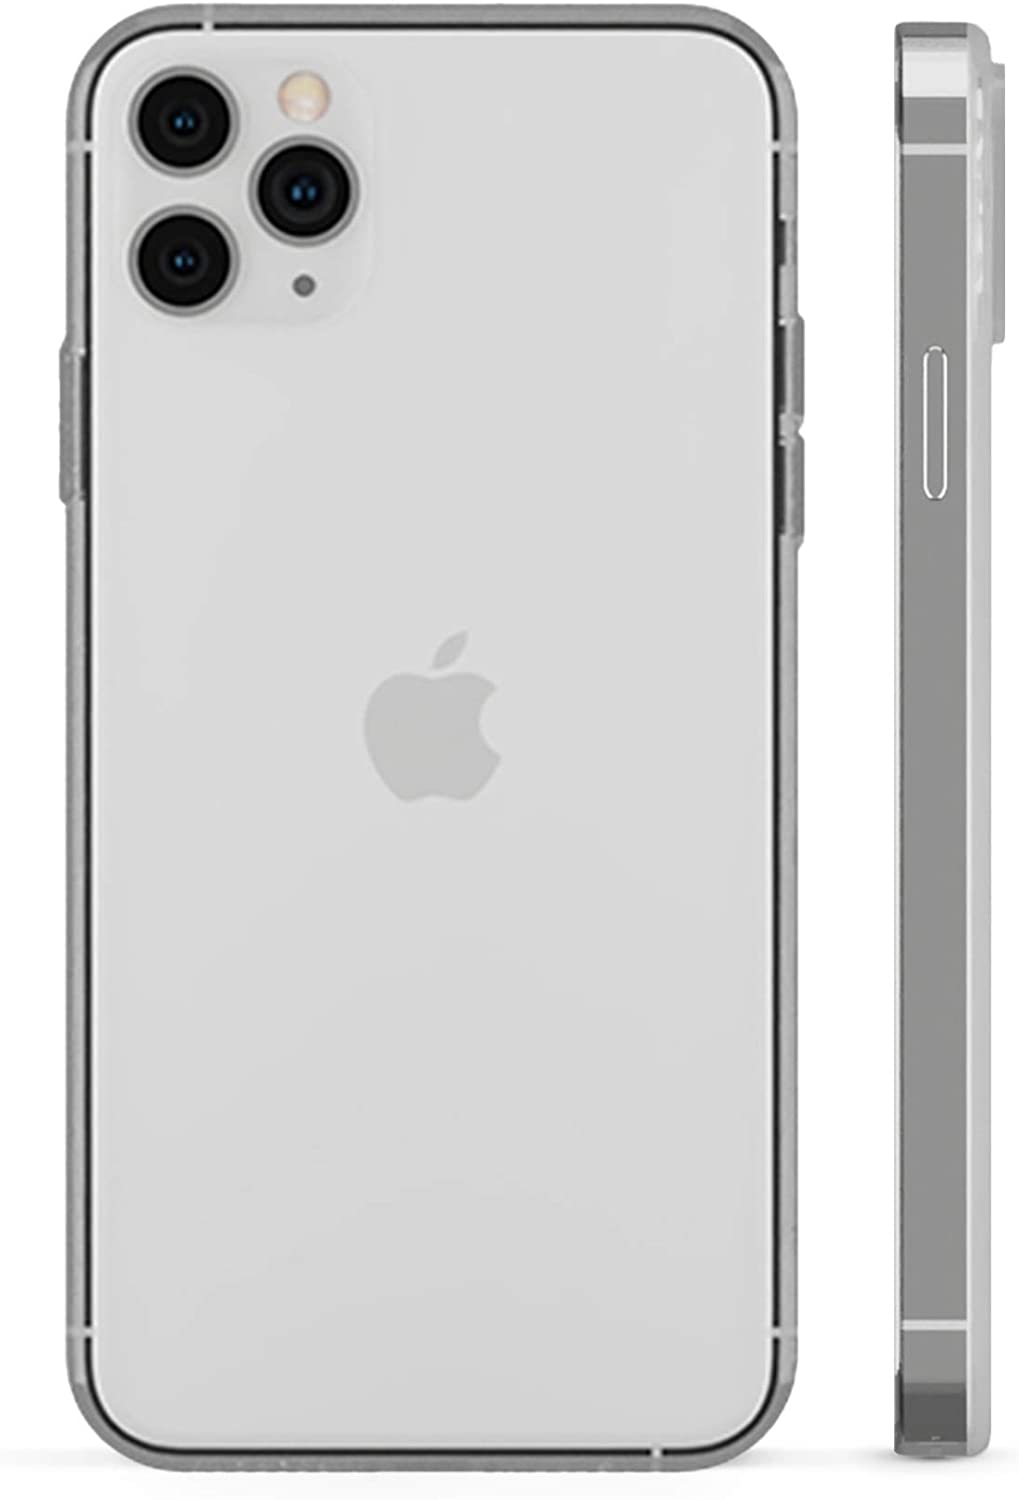 PEEL Ultra Thin iPhone 12 Pro Case, Clear Soft - Minimalist Design | Branding Free | Protects and Showcases Your Apple iPhone 12 Pro